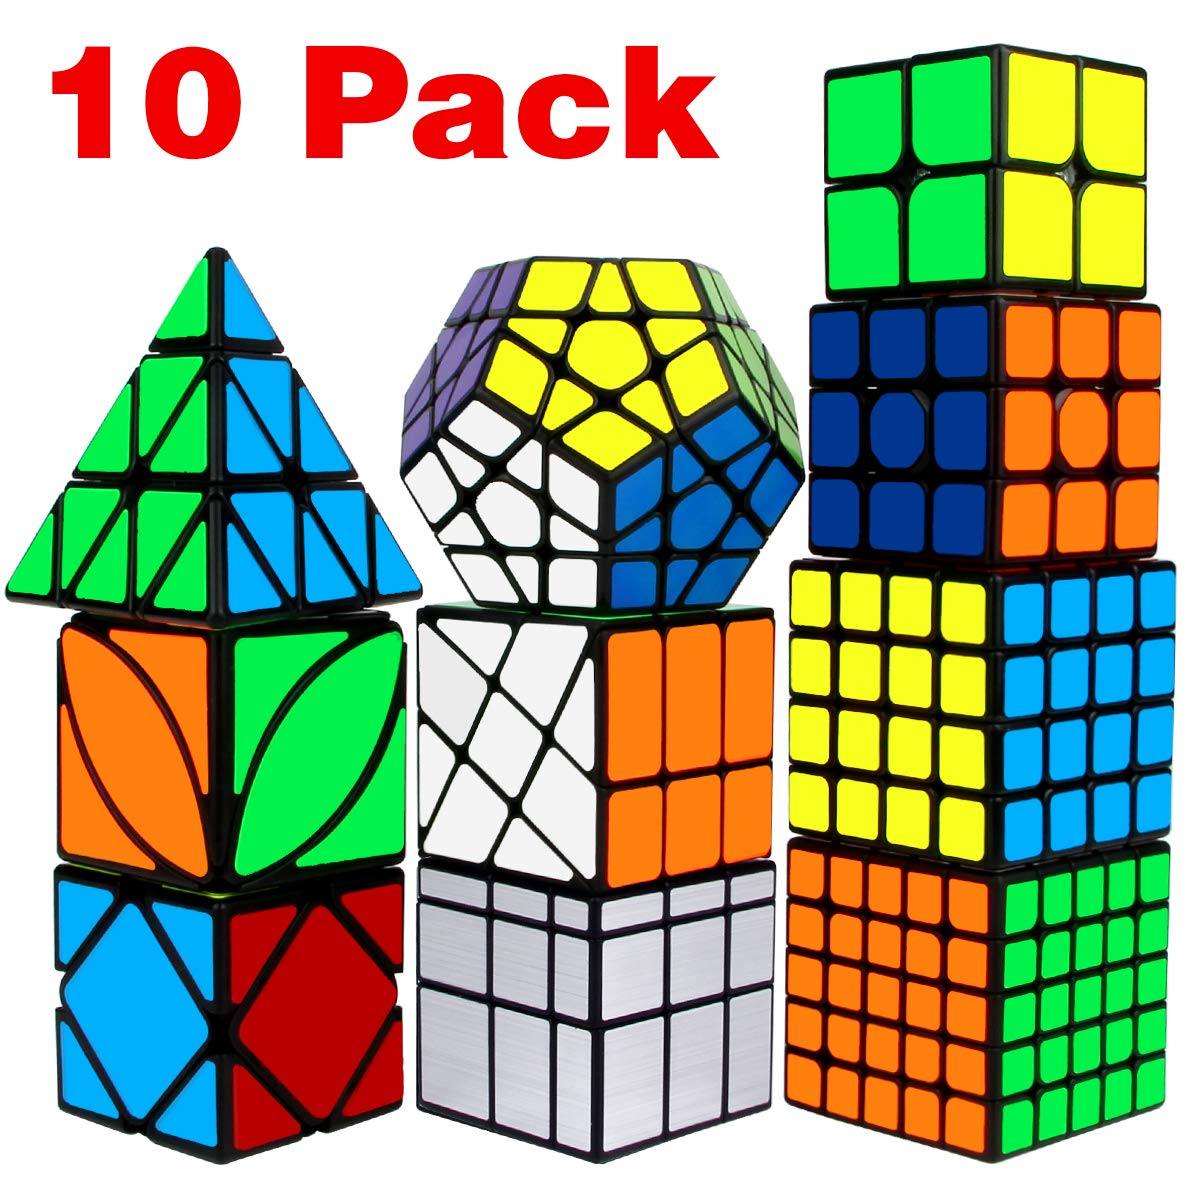 Speed Cube Set, Libay Cube Bundle 2x2 3x3 4x4 5x5 Pyramid Megaminx Skew Mirror Ivy Windmill Sticker Magic Cube Collection - Puzzles Cube Toys Gift for Kids and Adults Set of 10 by Libay